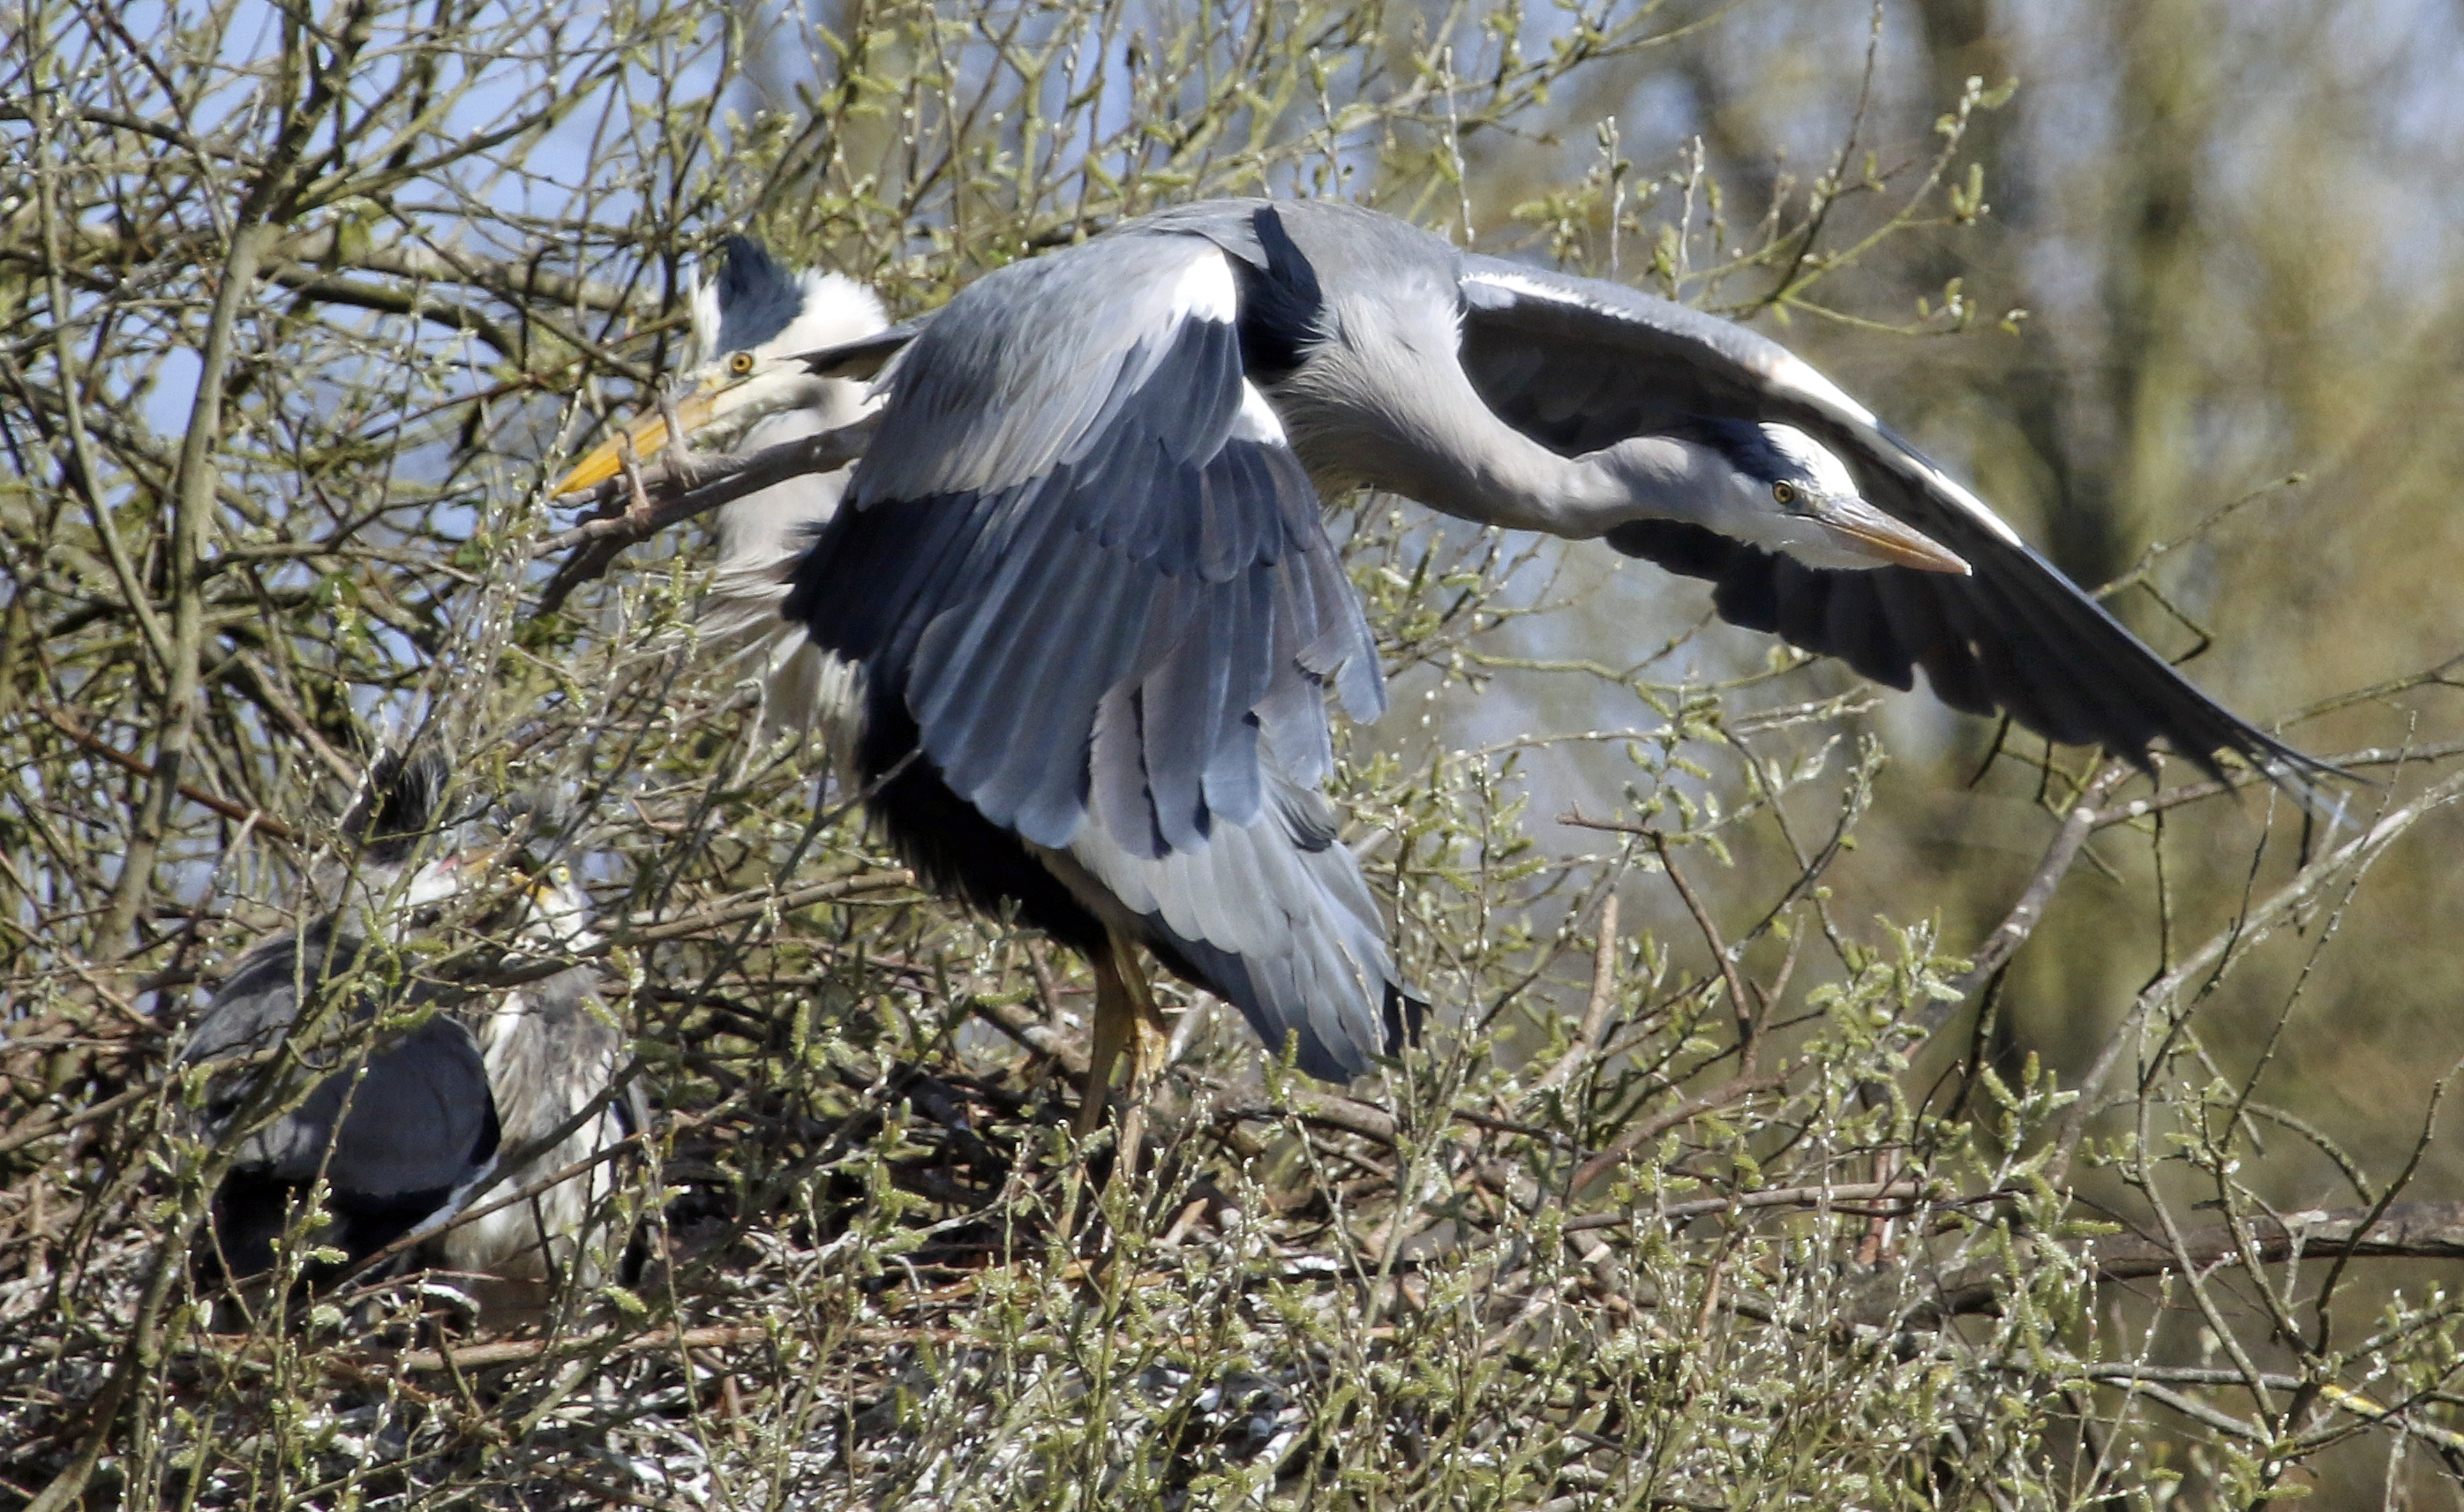 Herons at the nest